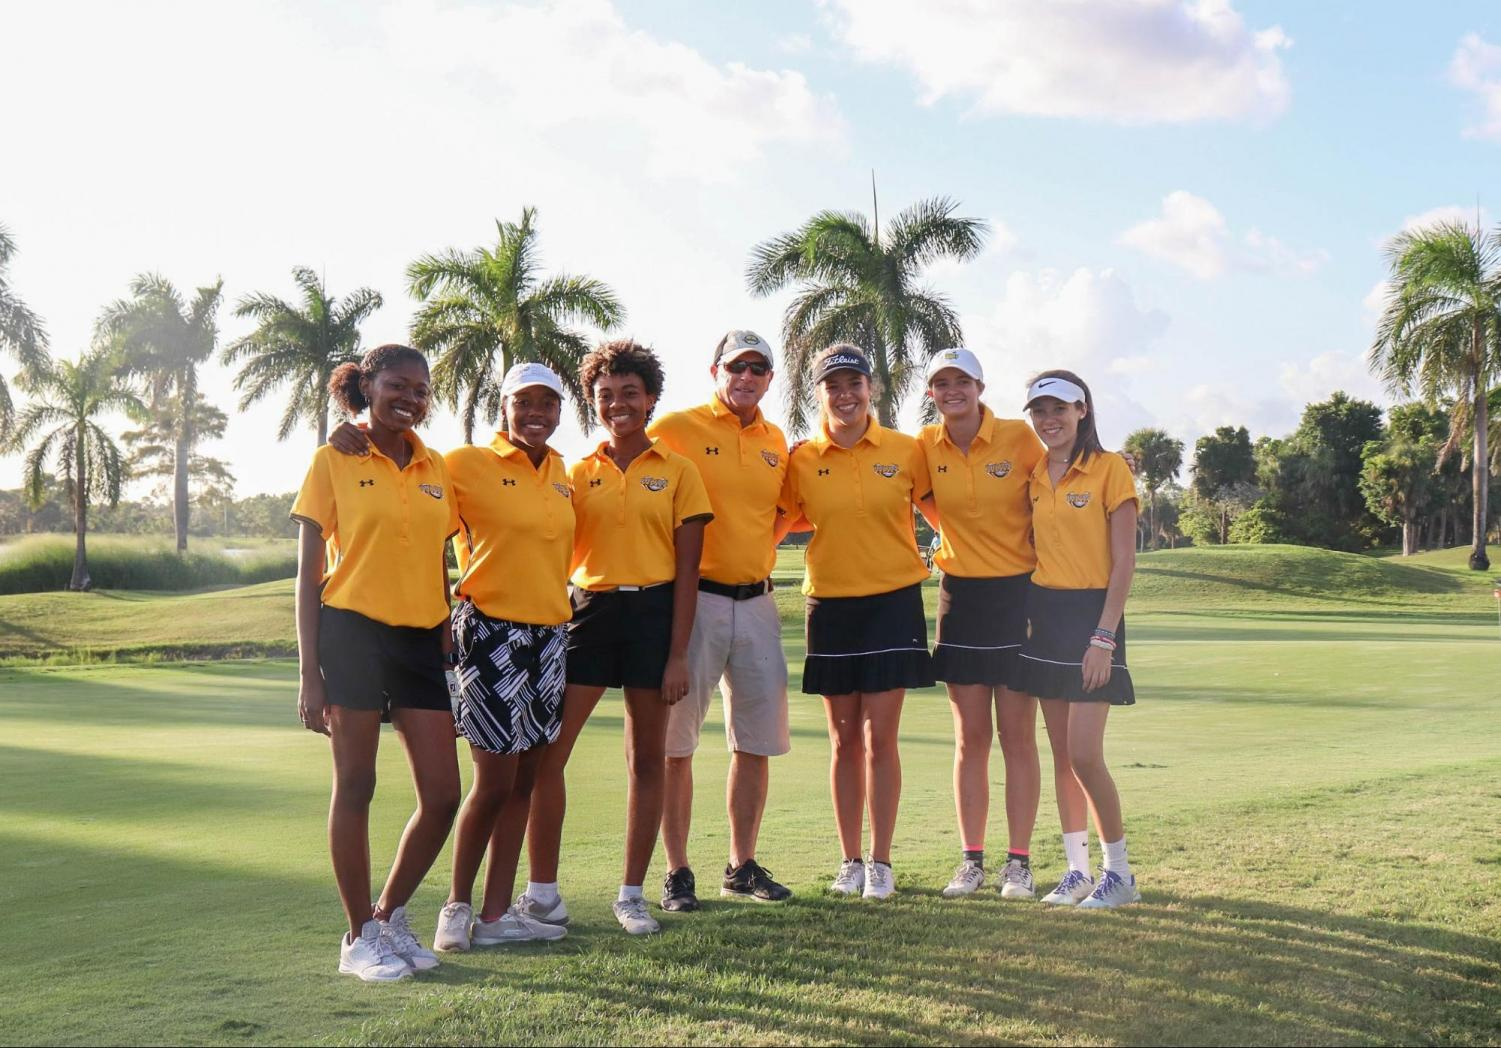 The girls' golf team stands unified in black and yellow having finished their match on Oct. 3 at Okeeheelee Park. Matches like this are helping the girls prepare for FHSAA District Girls' Golf Tournament at the end of the season. (L-R) Visual junior Myah Clemons, piano freshman Janise Tucker, visual sophomore Kailyn Bryant, girls' golf coach and School Counselor Mark Carson, communications senior Lilly Randolph, theatre sophomore Emma Troast, and communications freshman Marion Randolph hope for the best at the upcoming matches.